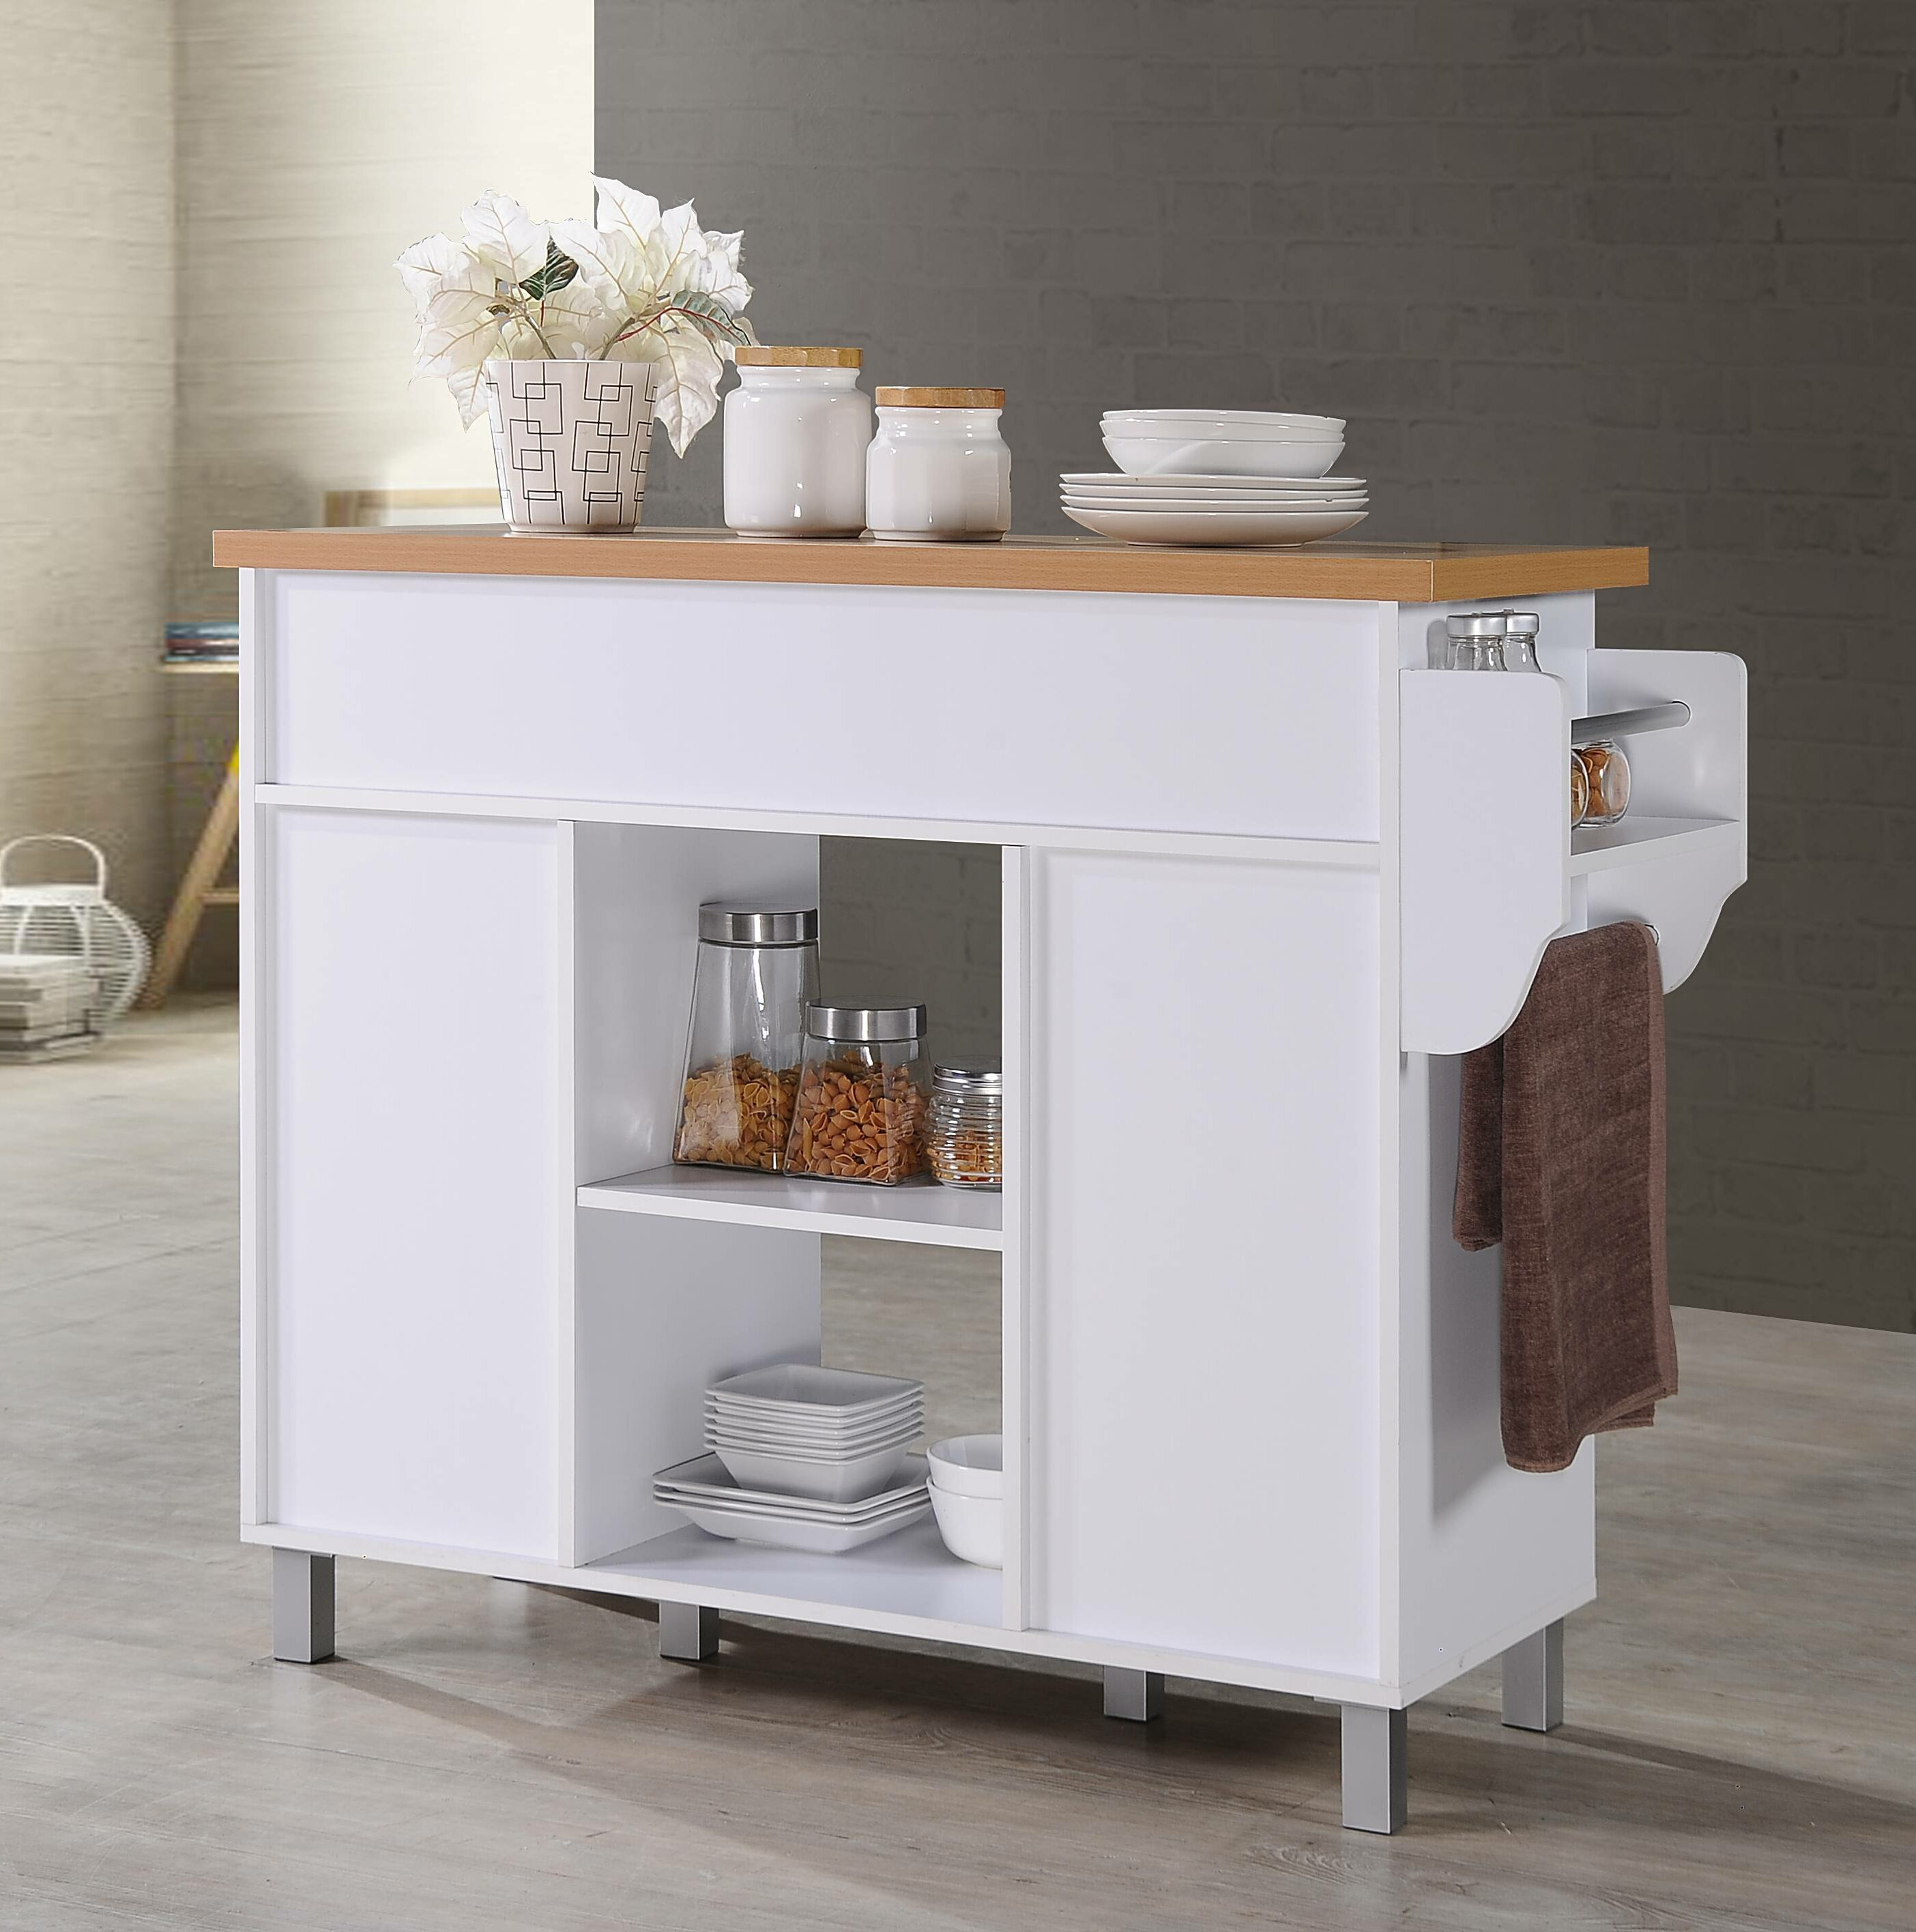 Hogle Kitchen Island With Spice Rack And Towel Rack &